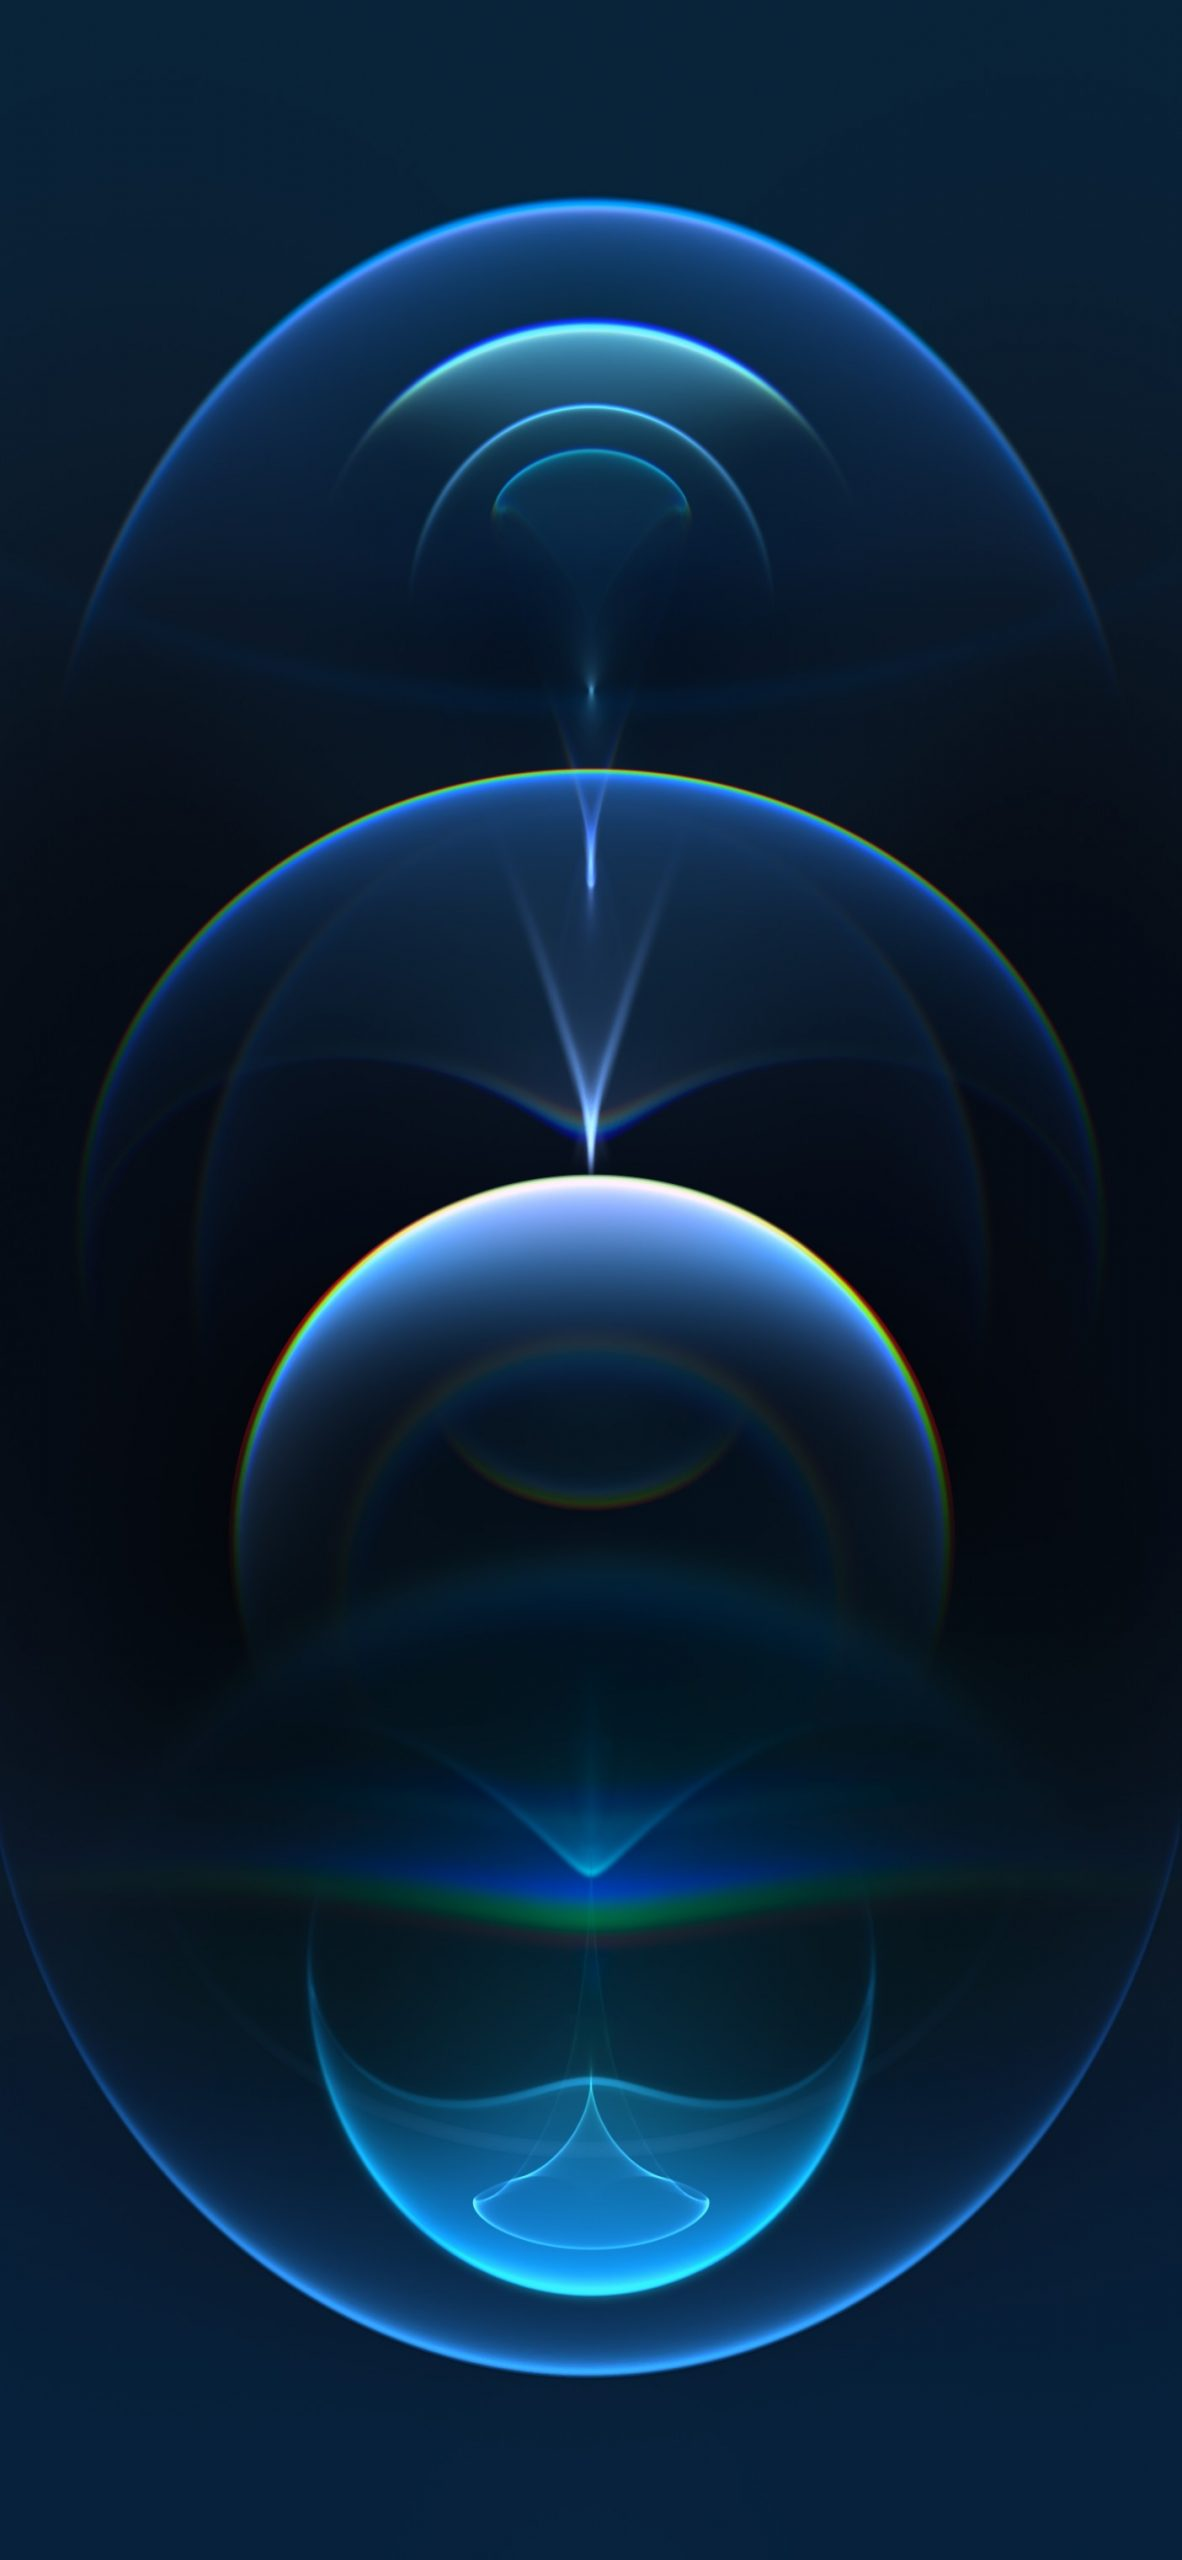 apple iphone 12 pro wallpapers 4 scaled